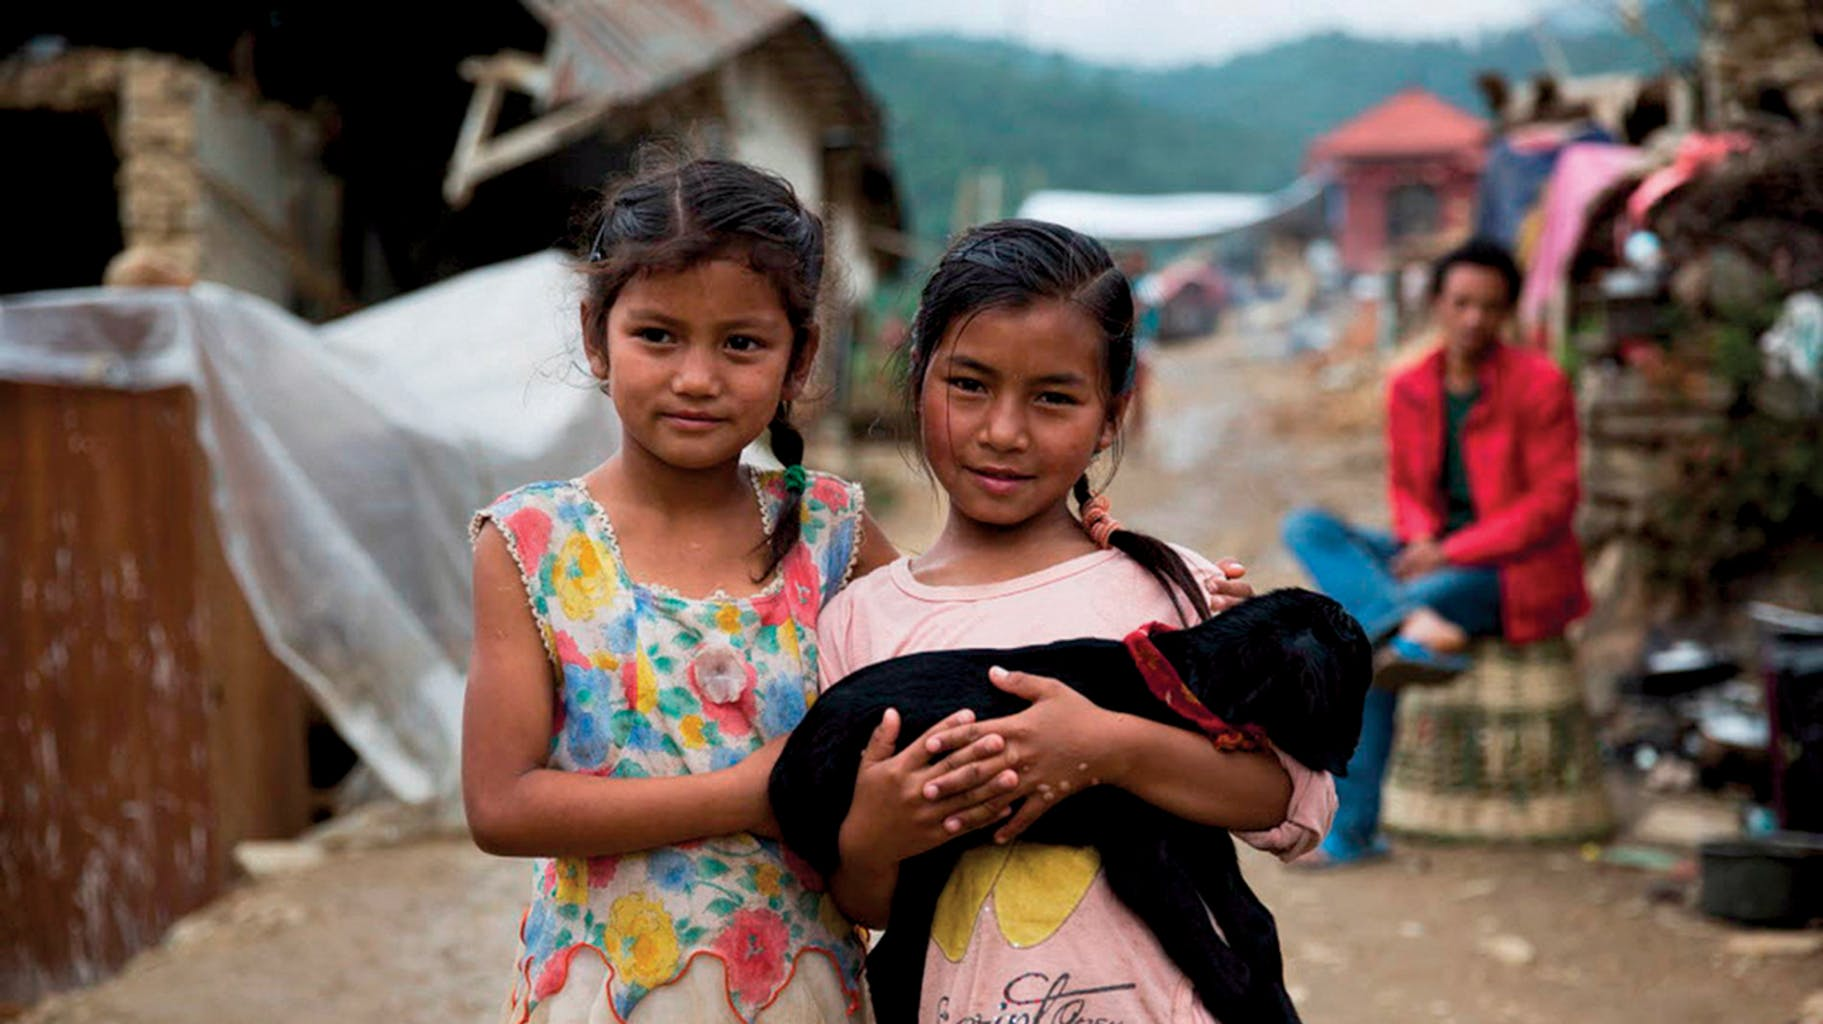 Girls with one of their surviving goats in Nepal's Lalitpur District, after the 2015 earthquake, which killed 9,000 people and countless animals, including  livestock; this created hardships for farmers and rural communities here, which depend on animals for food.